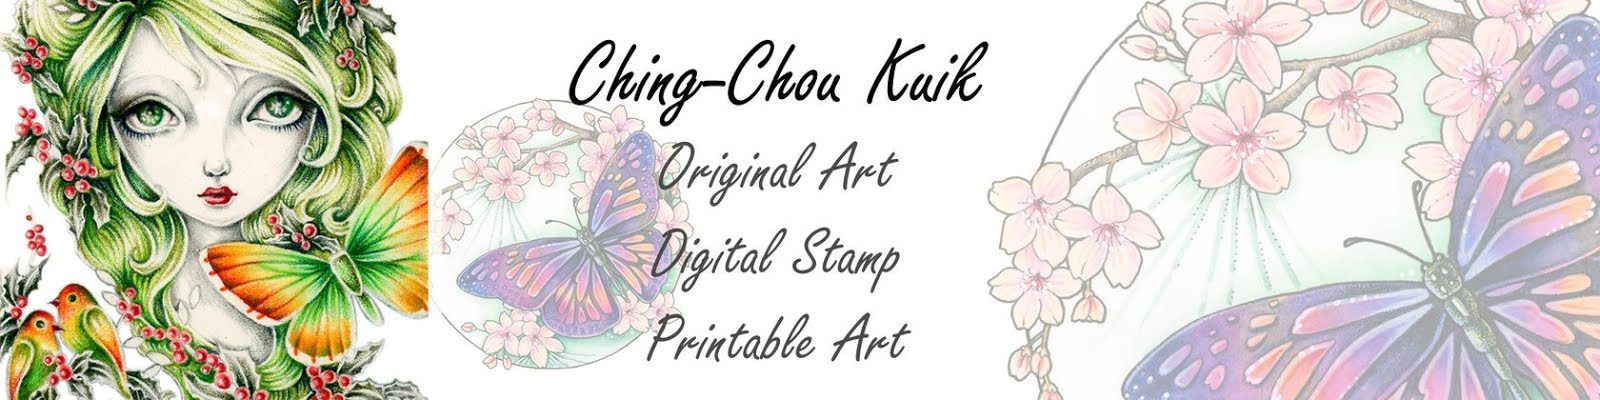 Sponsor Ching-Choa Kuik Digital Art